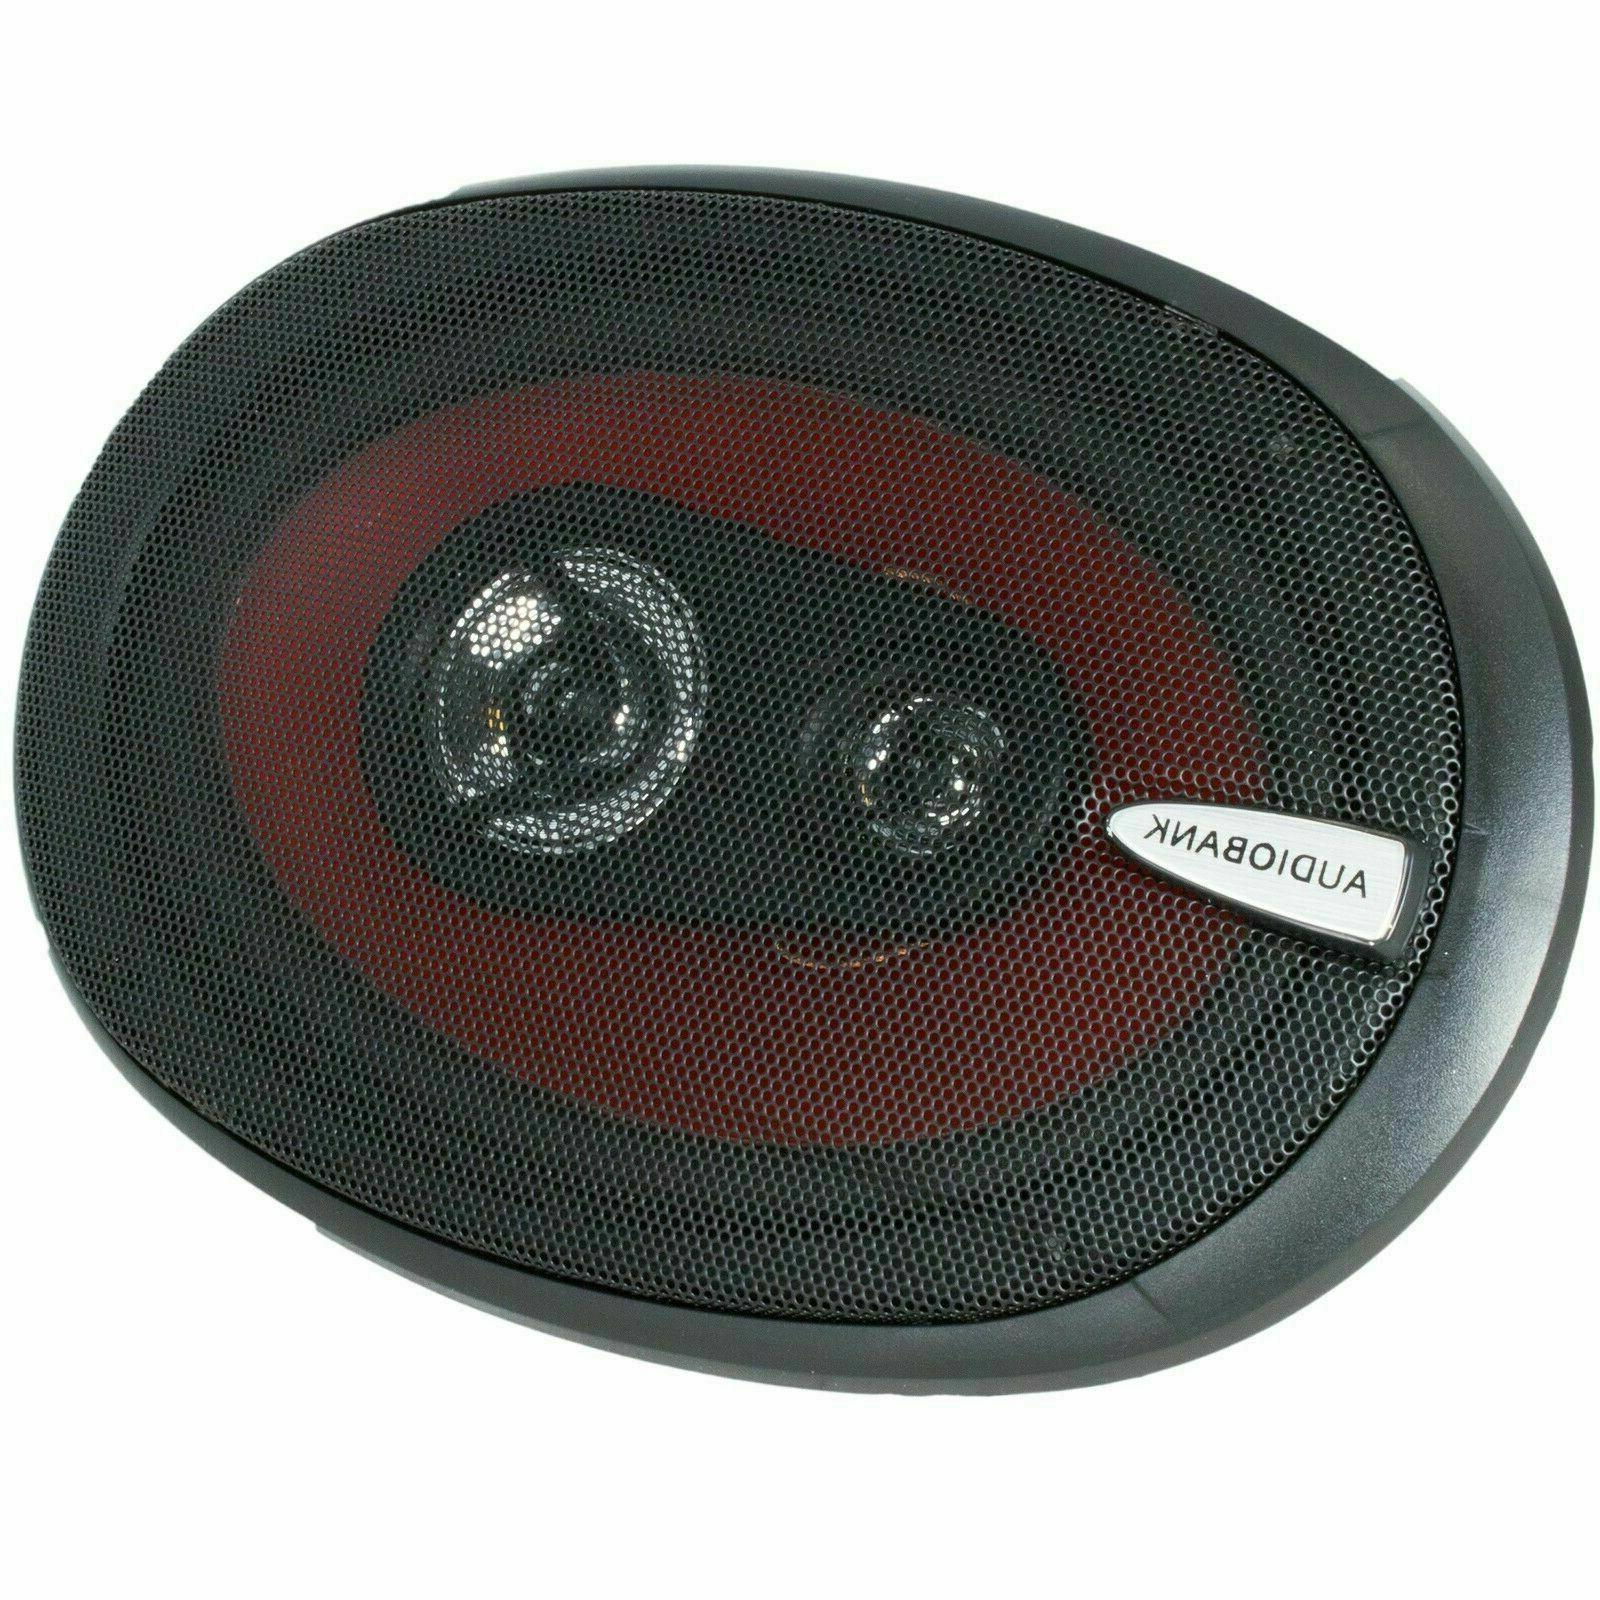 "Audiobank + 6.5"" 400W 4-Way Car Speakers"